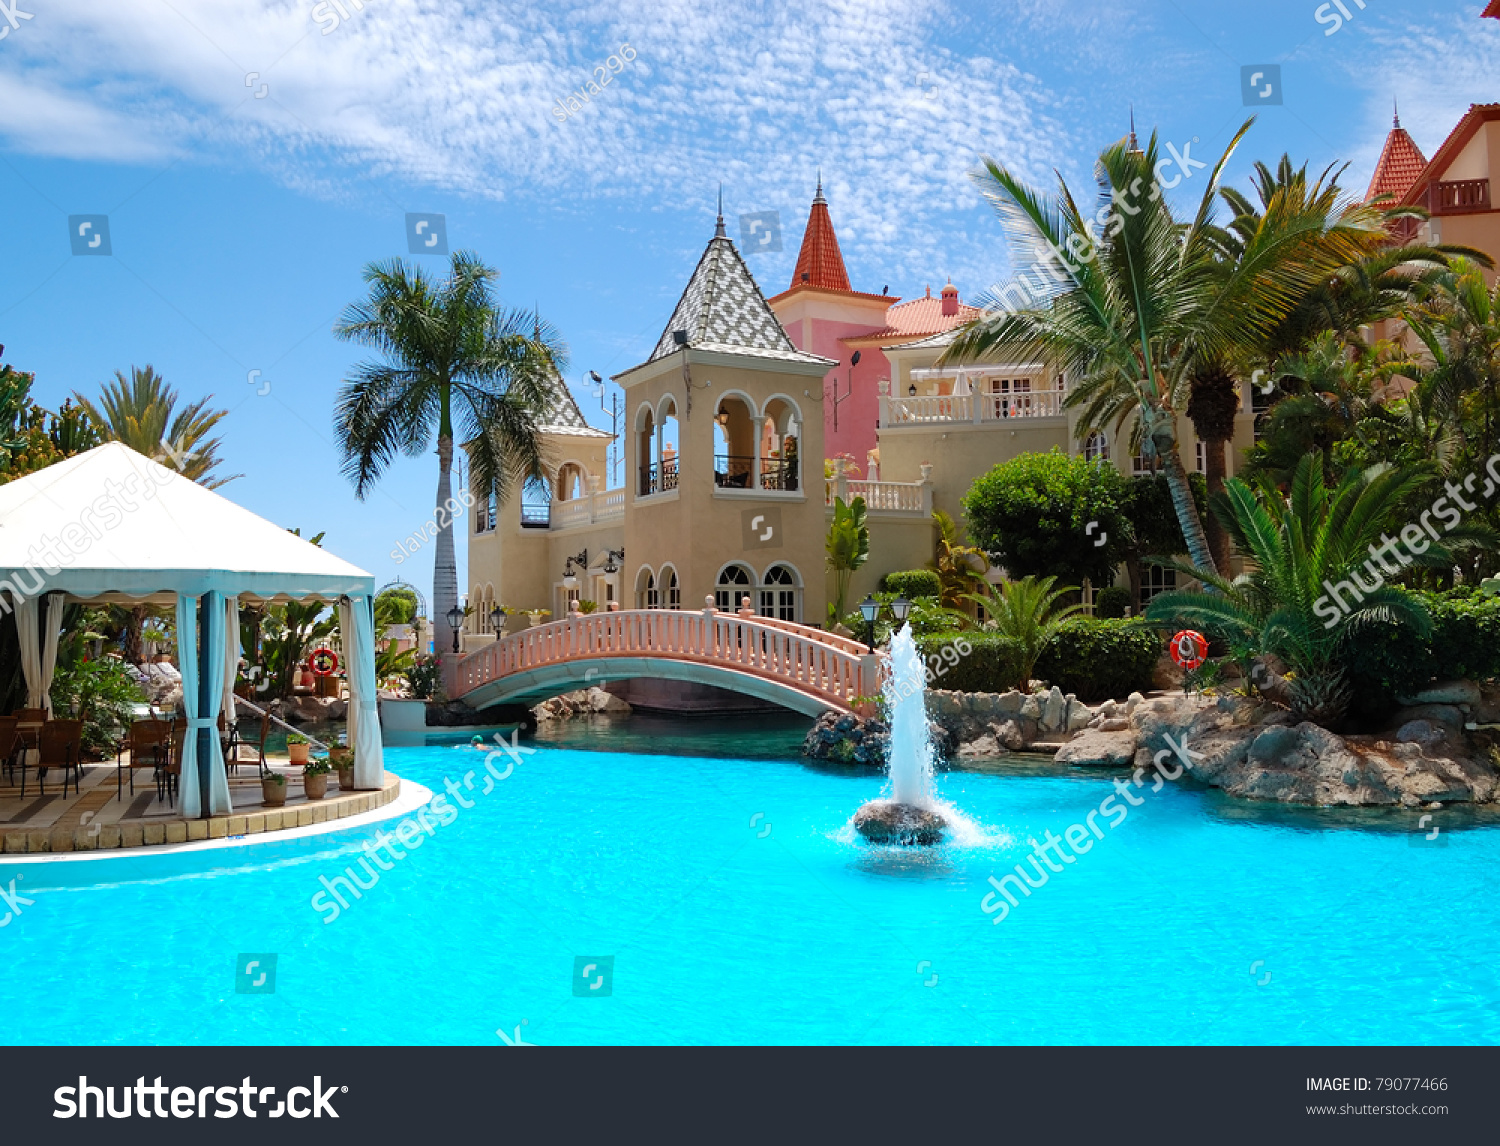 Swimming Pool With Fountain At Luxury Hotel Tenerife Island Spain Stock Photo 79077466